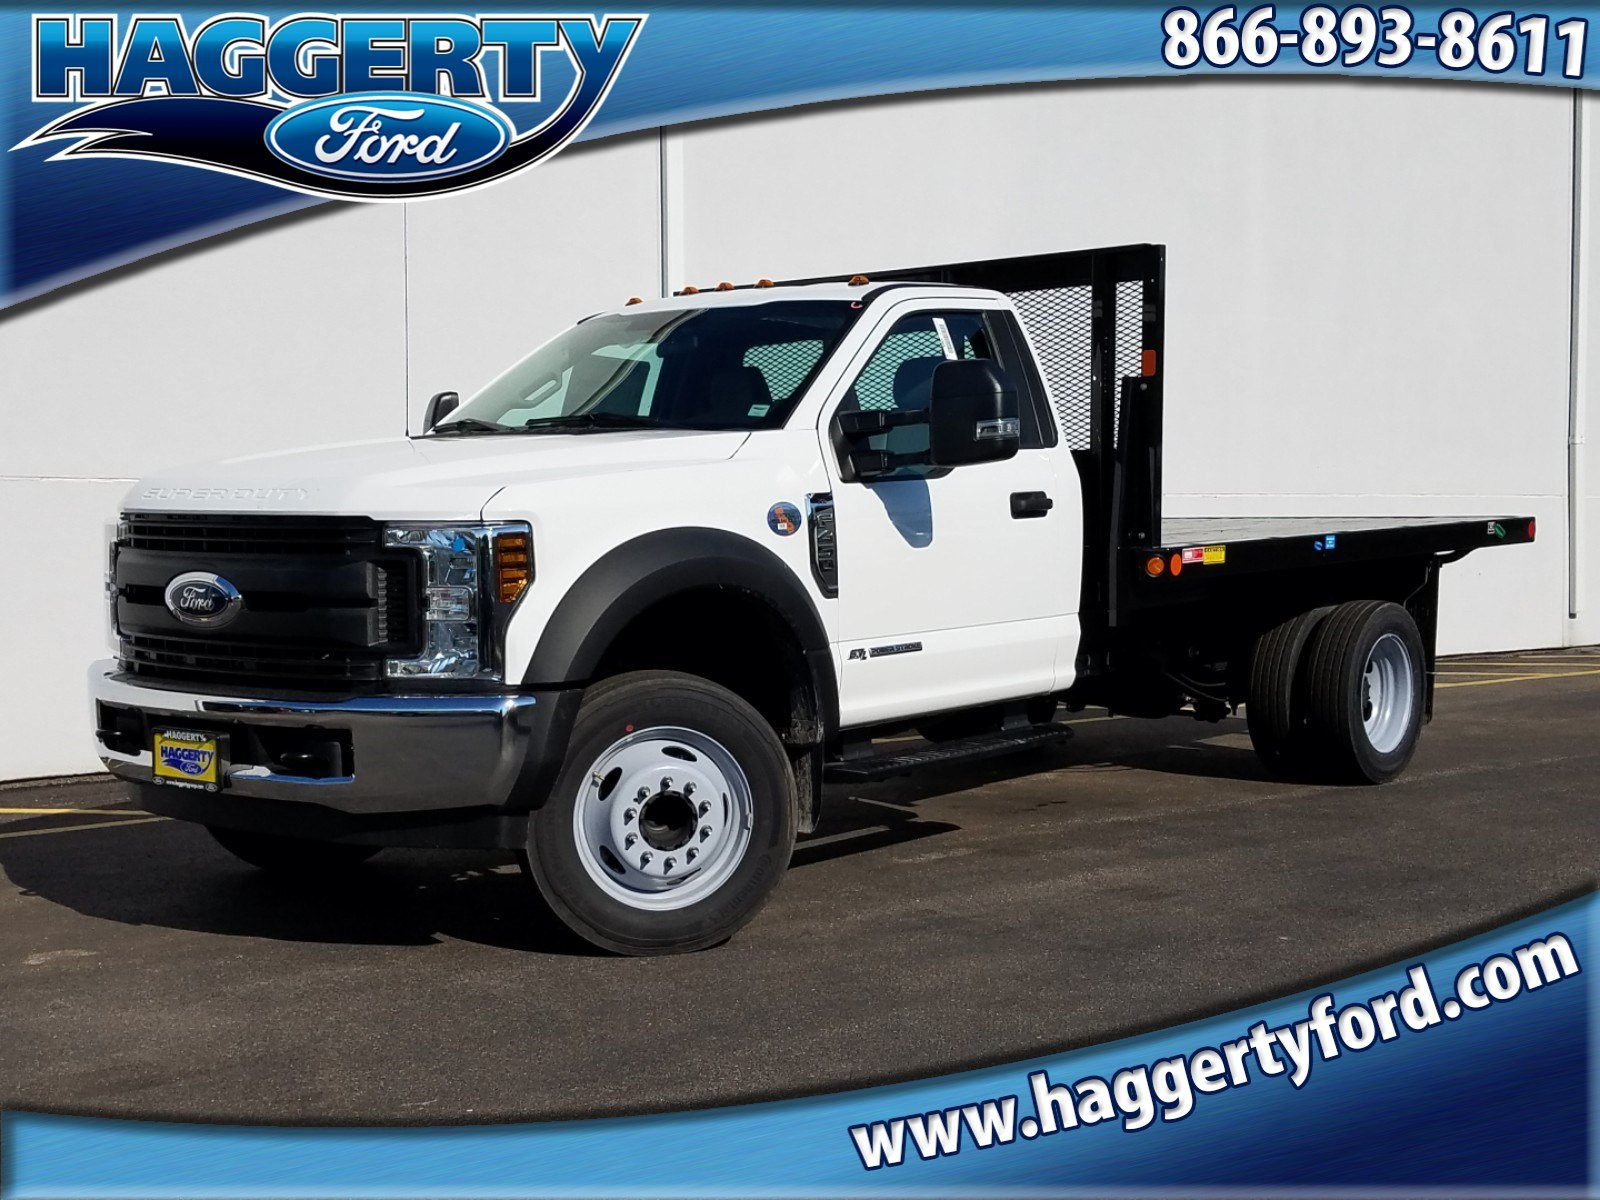 New 2019 Ford Super Duty F-450 DRW XL W/ Versa-Line 12 FT. Platform Body